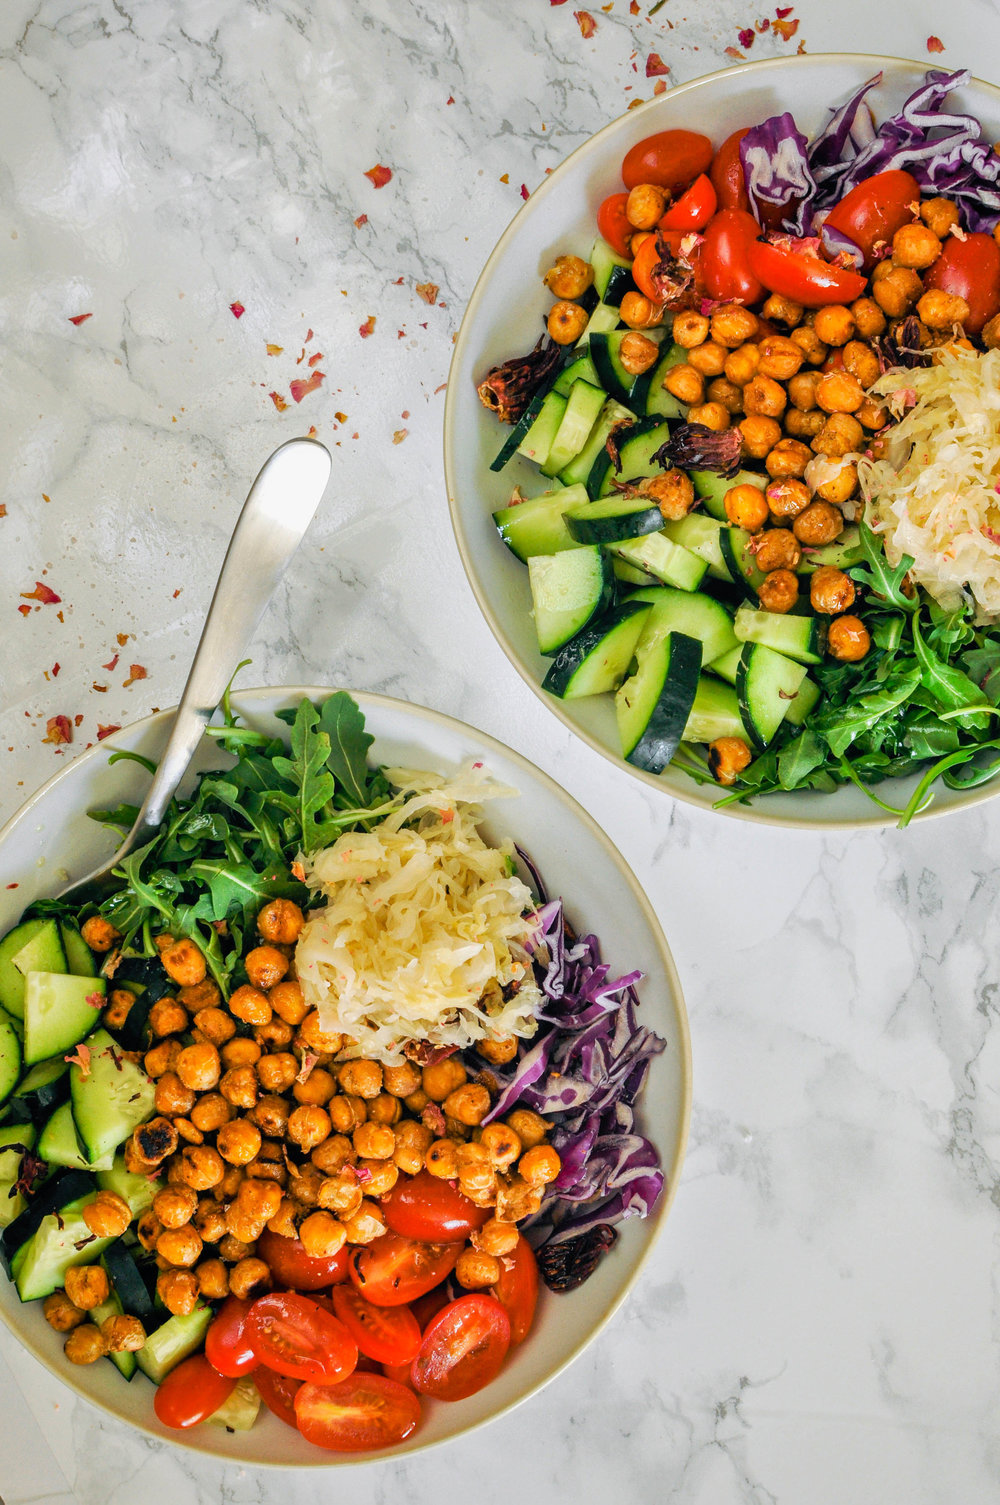 Chickpea Power Bowl Recipe from This Healthy Table